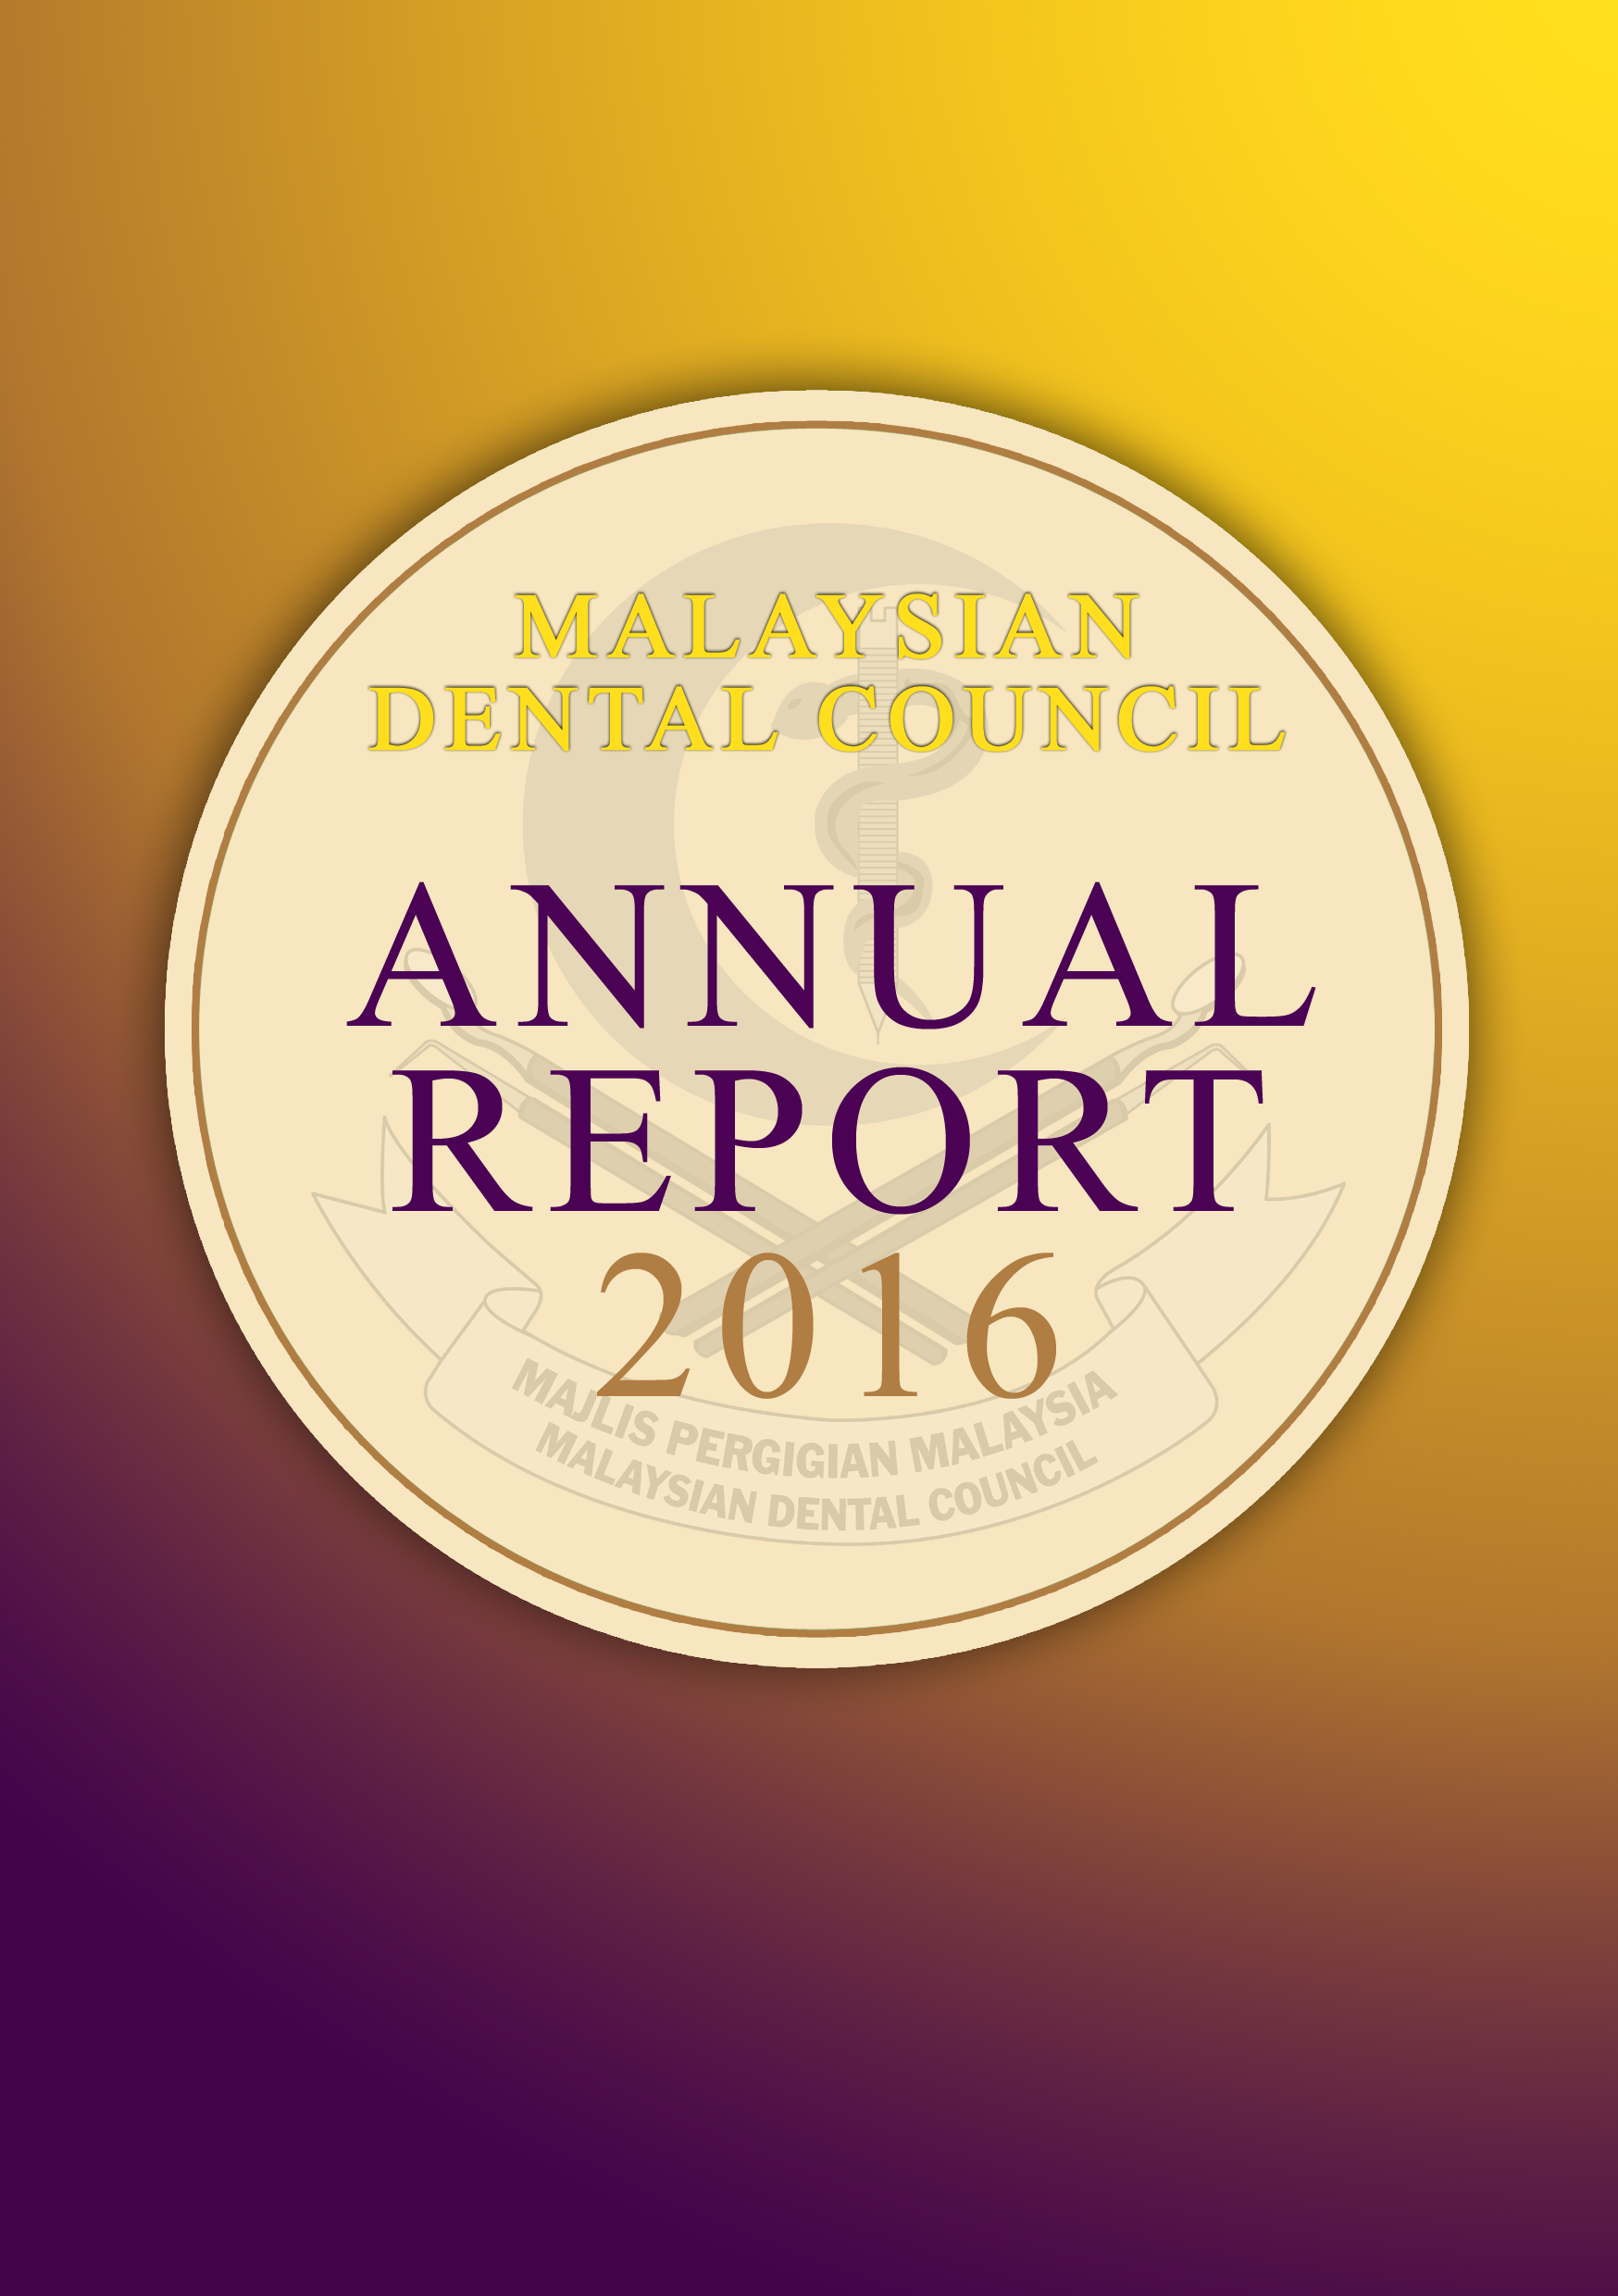 Malaysian Dental Council Annual Report 2016